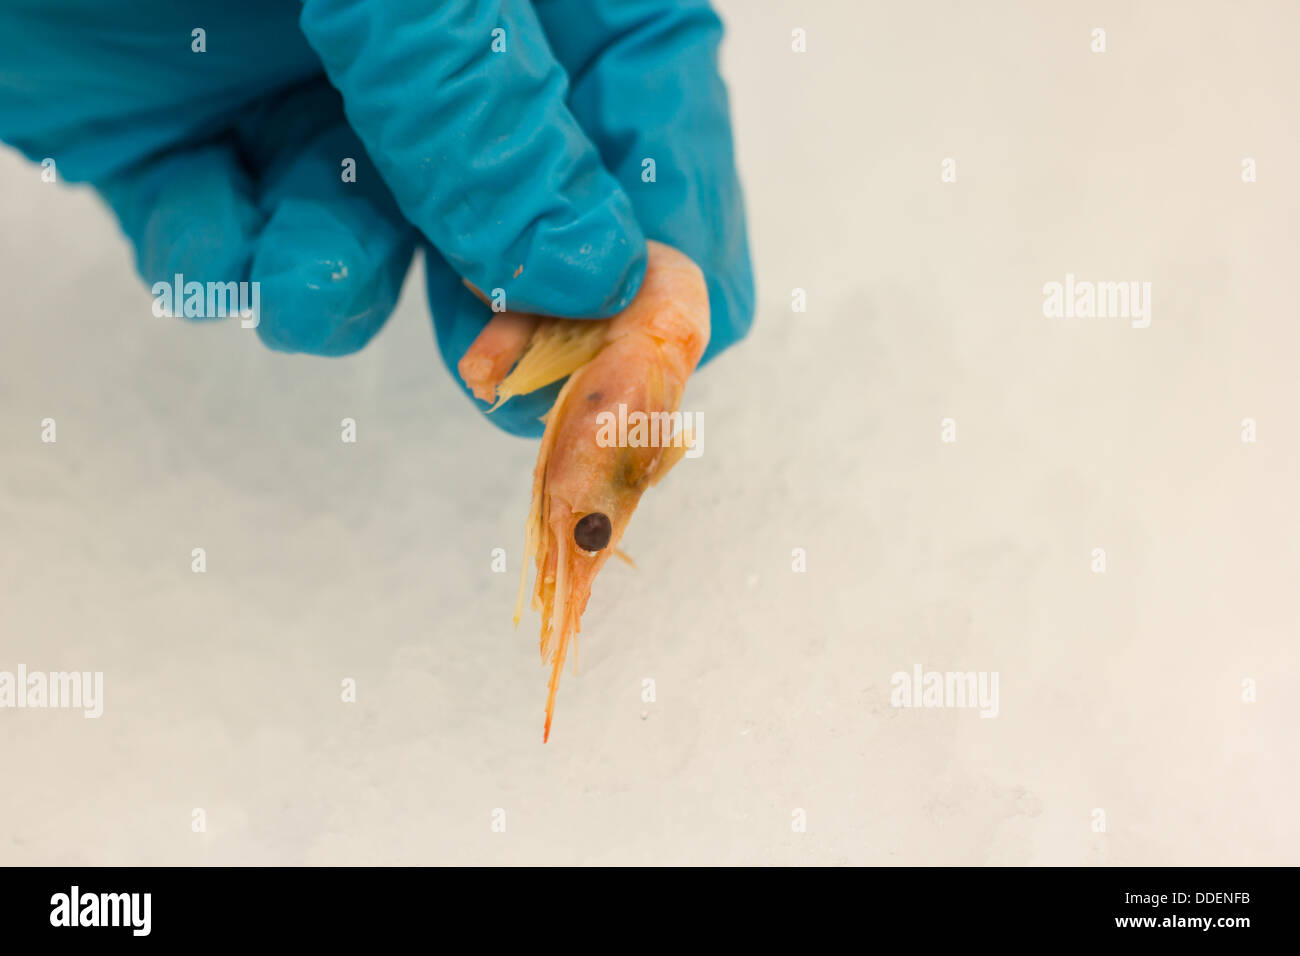 An image of a shrimp being picked up from the ice it is stored on, by someone wearing rubber gloves. Landscape - Stock Image